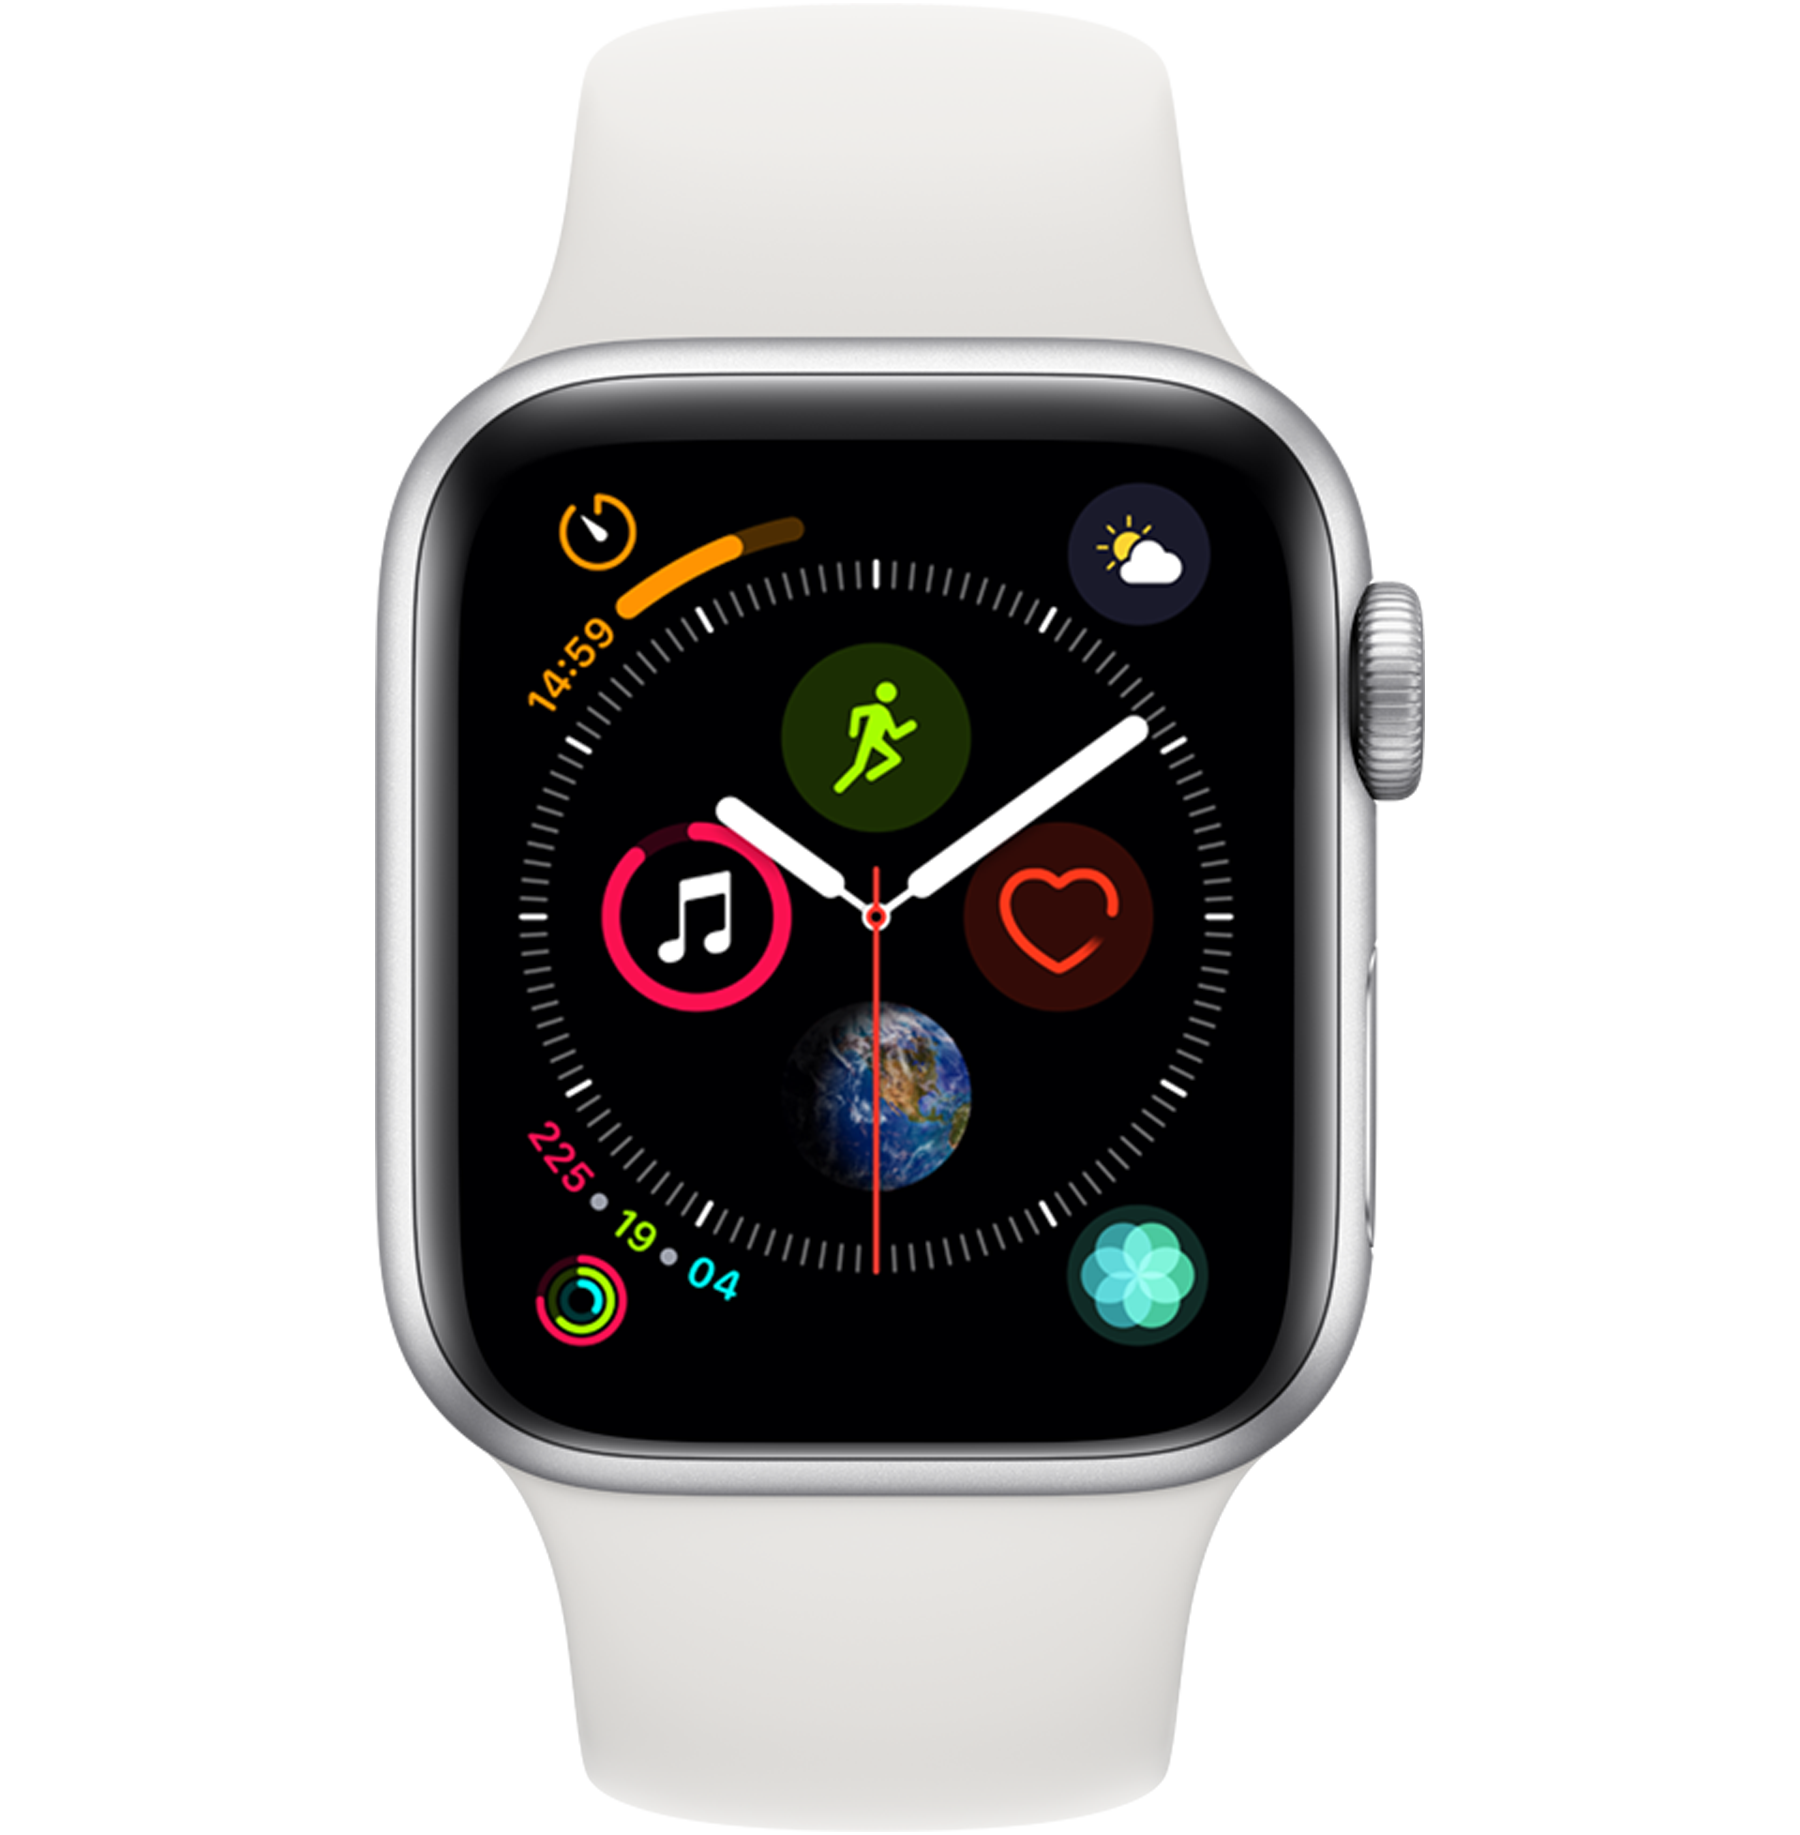 A side view of the Apple Watch Series 4 in Silver.